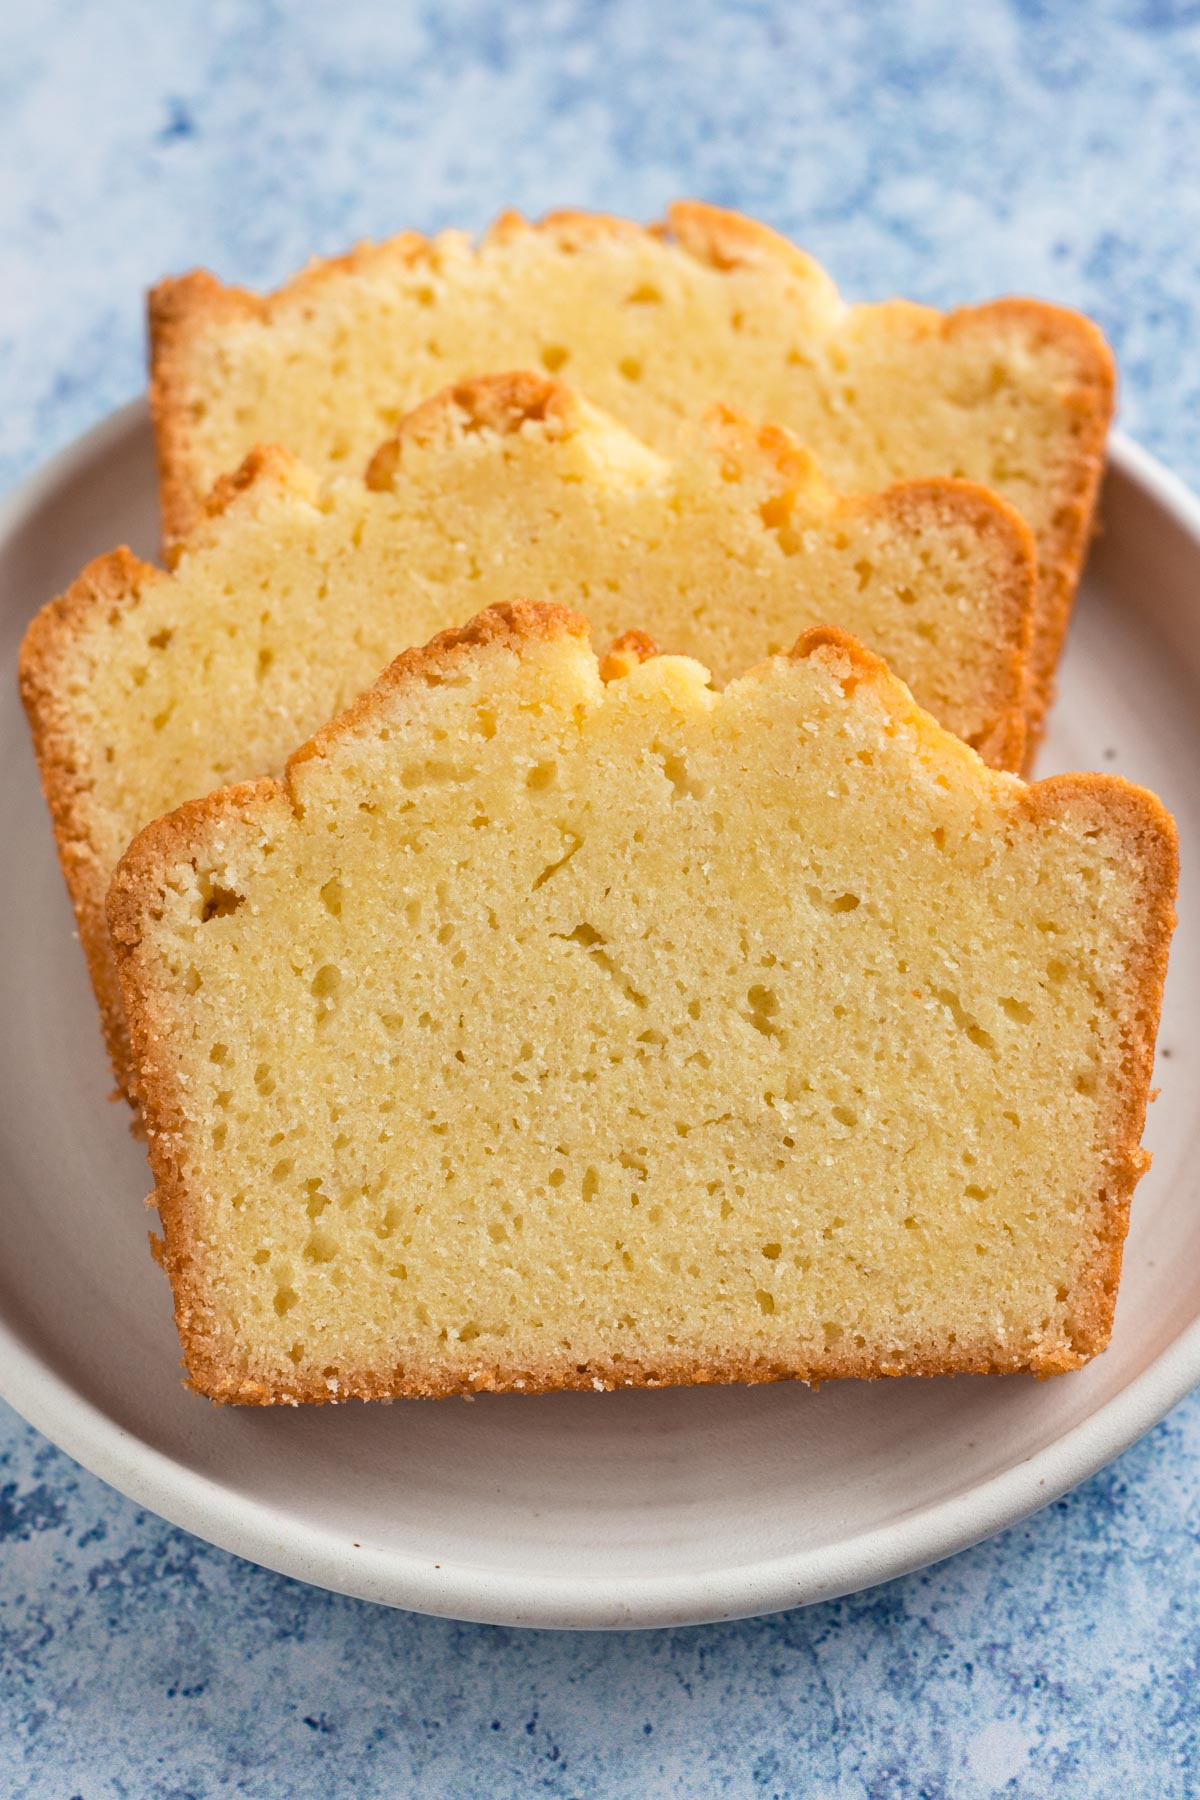 angled view of slices of pound cake on a white plate